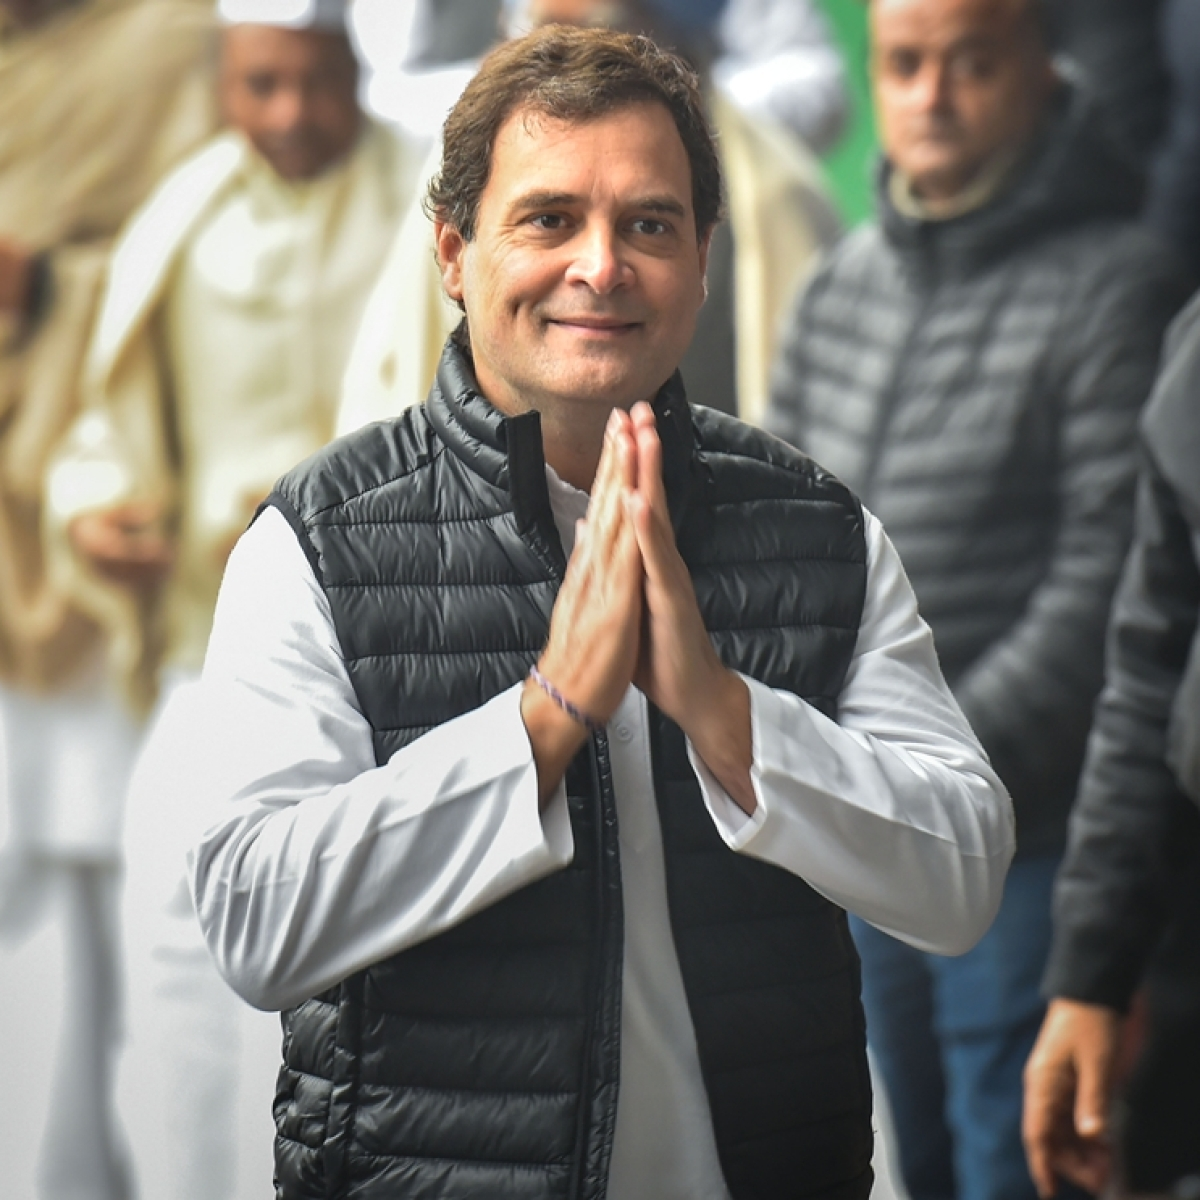 'I am saddened by the news': Rahul Gandhi condole deaths of 20 people in UP bus accident